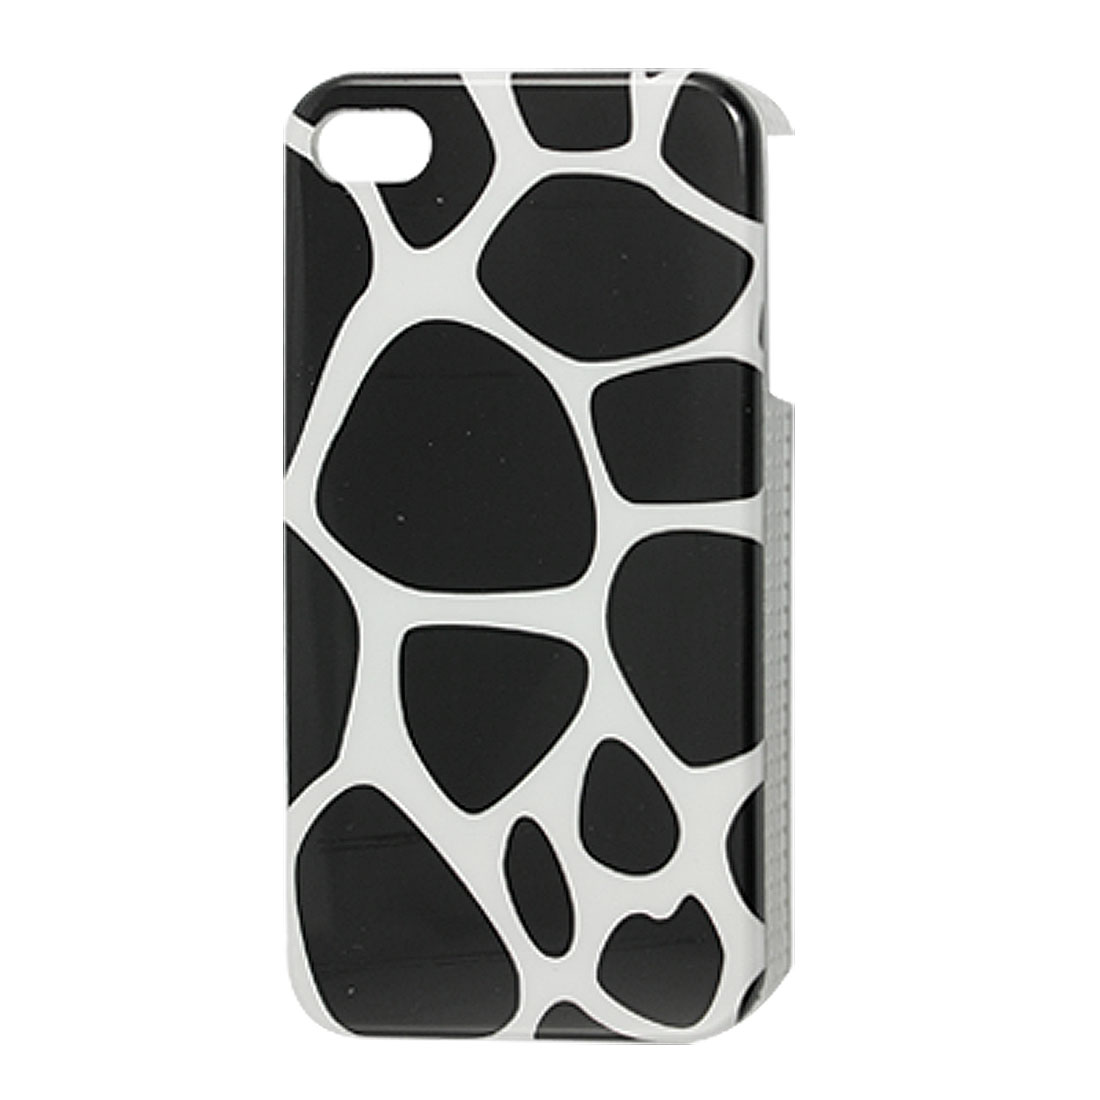 Black White Giraffe Pattern Hard Plastic IMD Back Case for iPhone 4 4G 4S